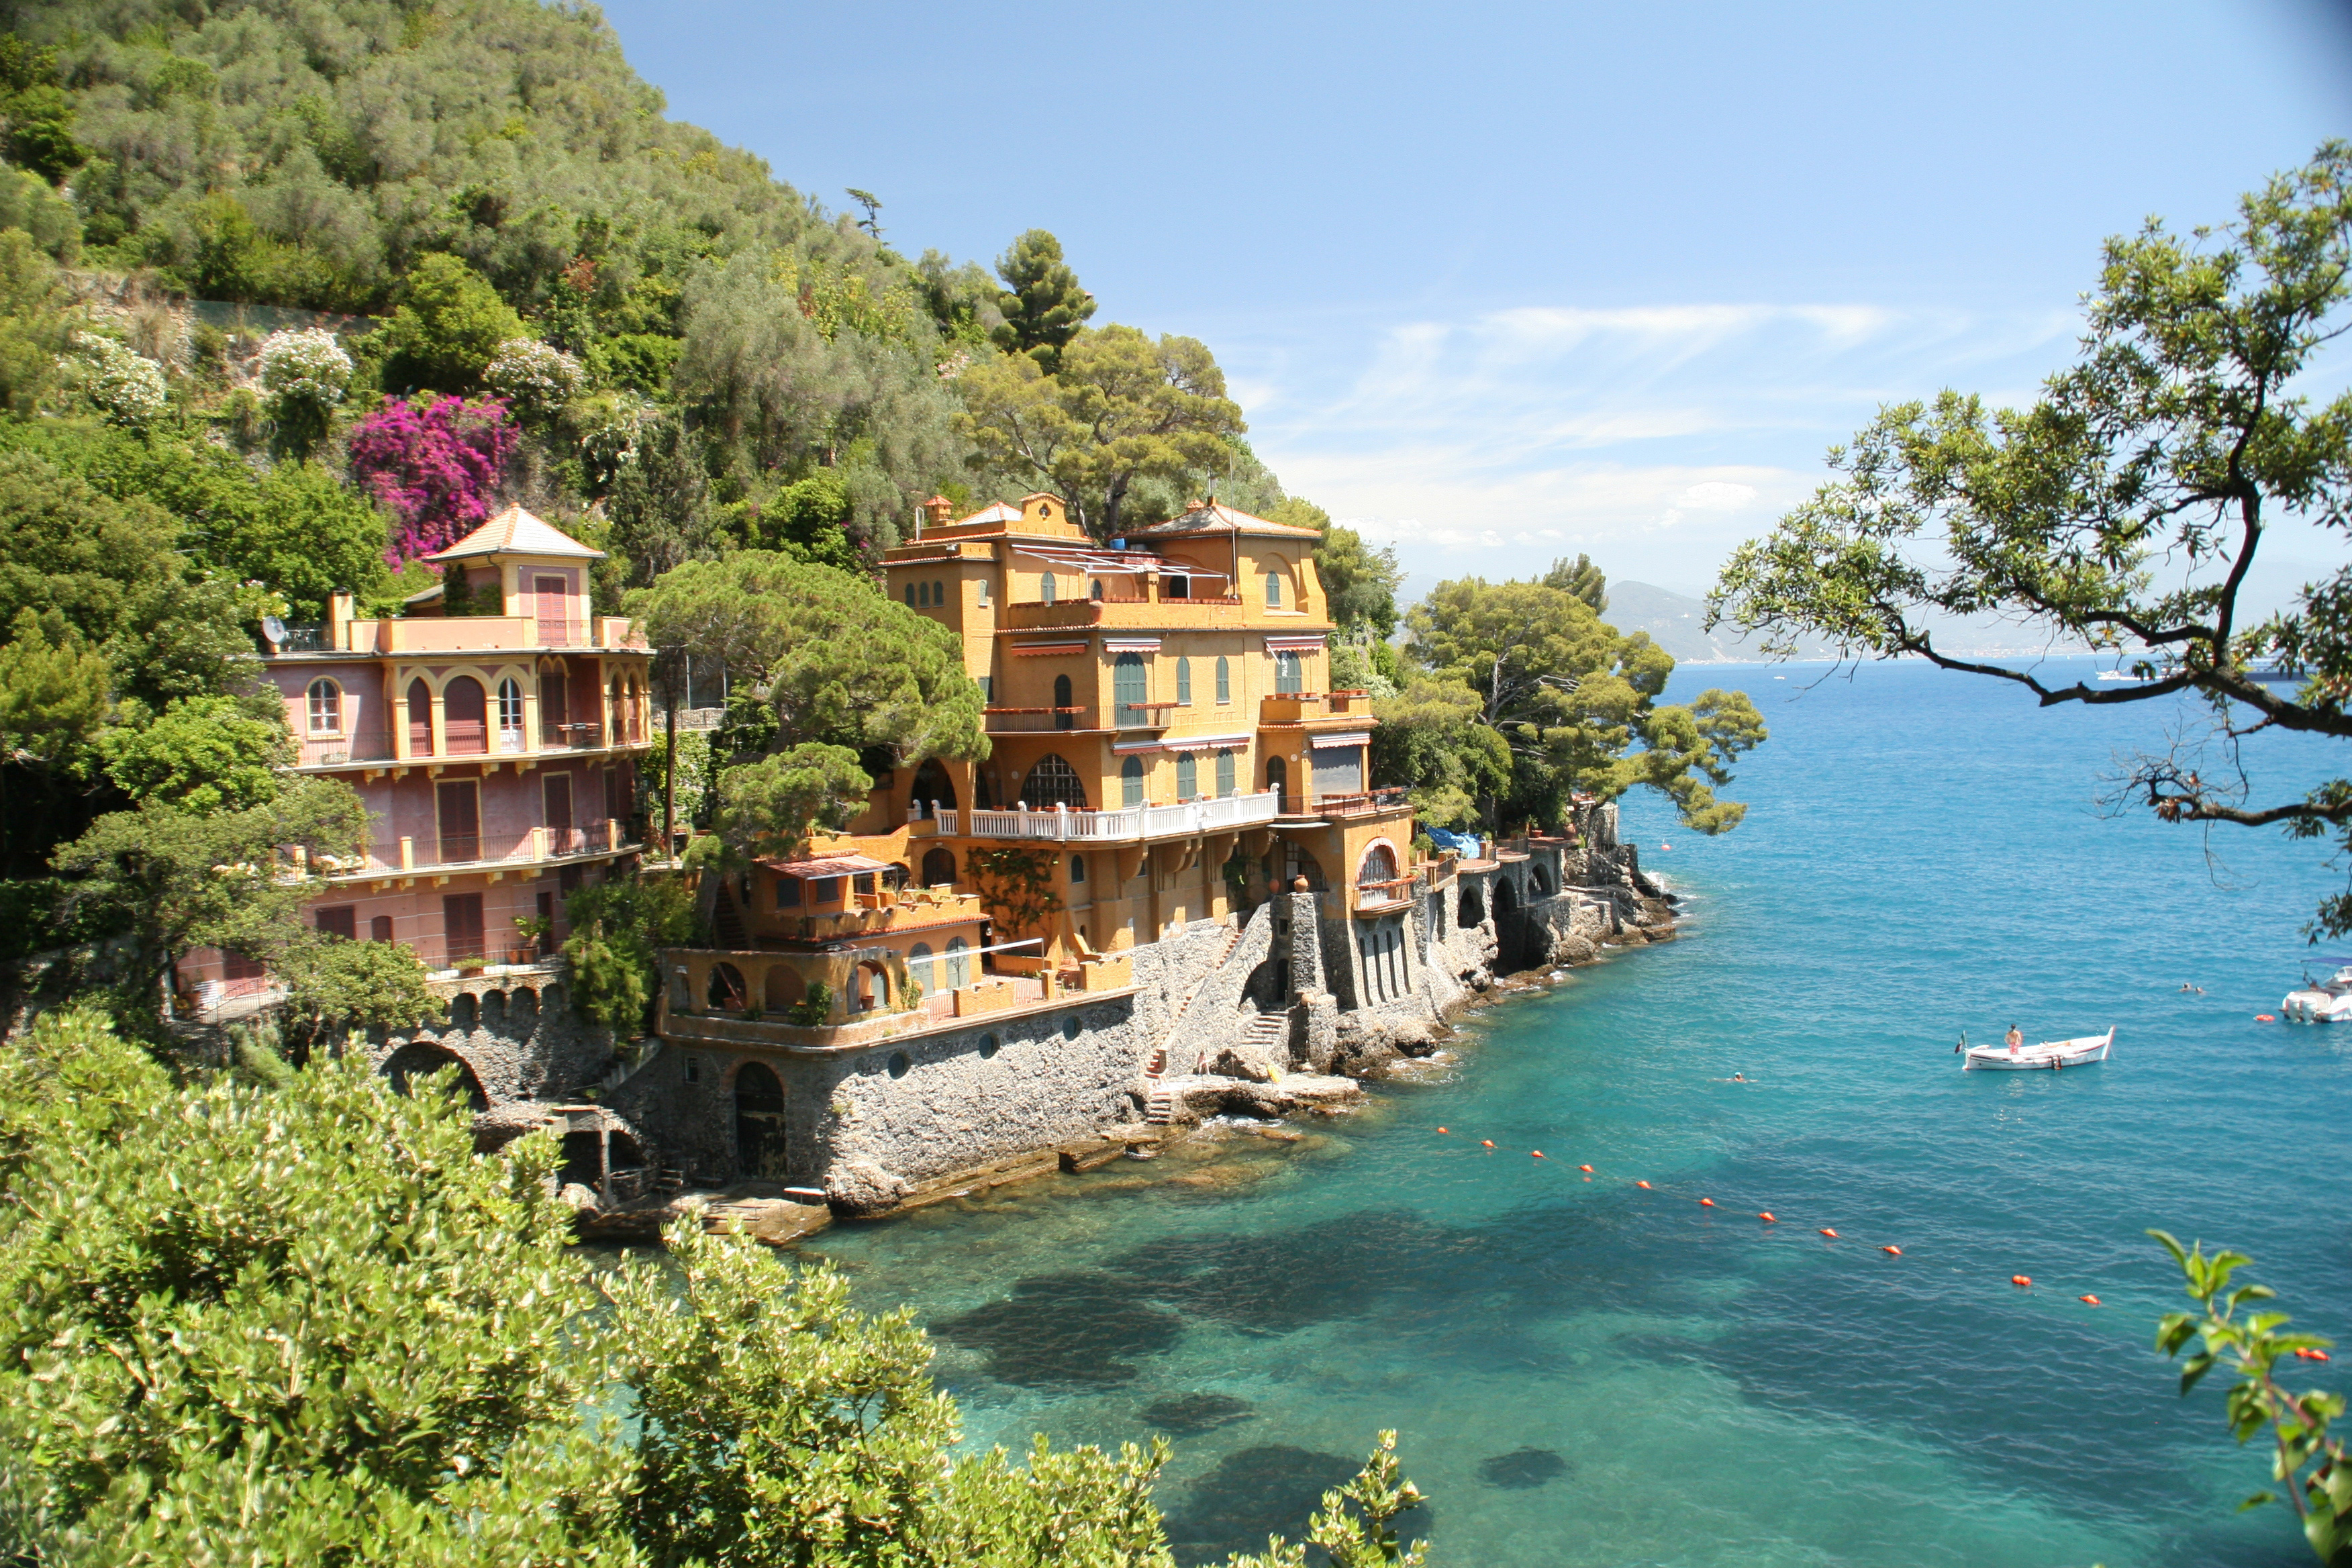 Walks of the Cinque Terre and Portofino